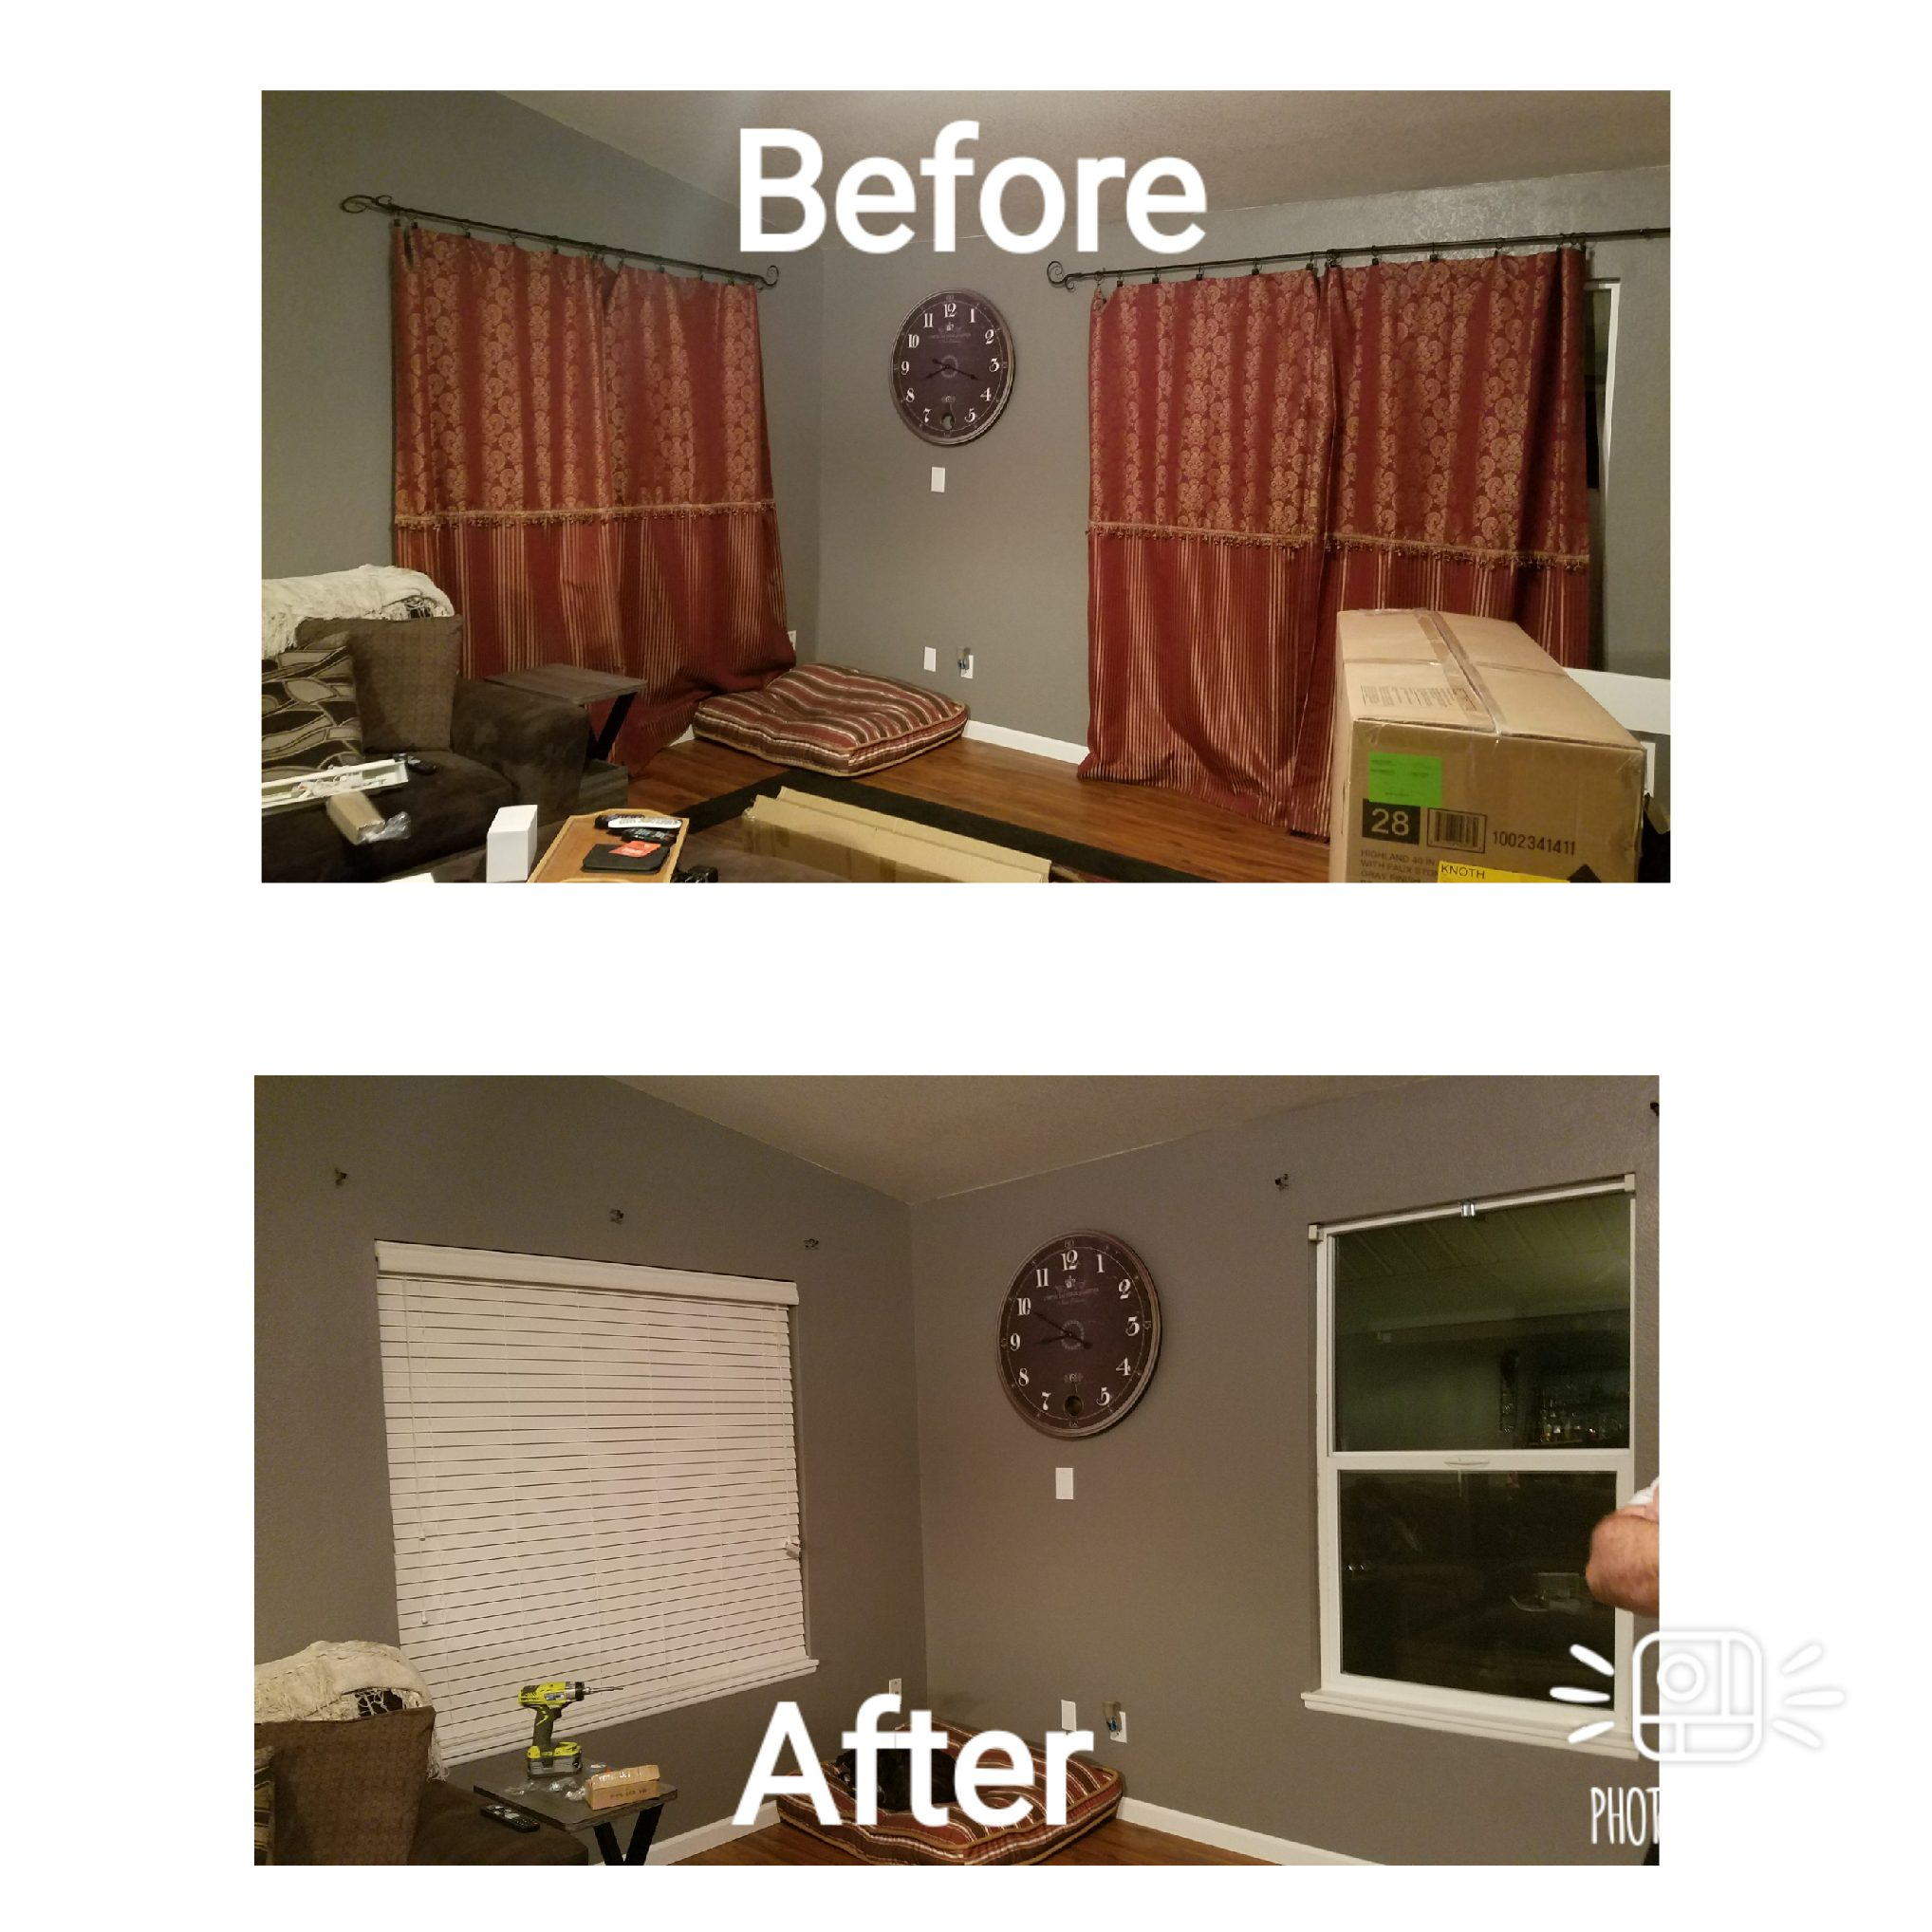 com selected roman windows delivery ideas decorating taffeta treatment bay vertical installation policy fabrics blind select for expression return window on with blinds stripe free